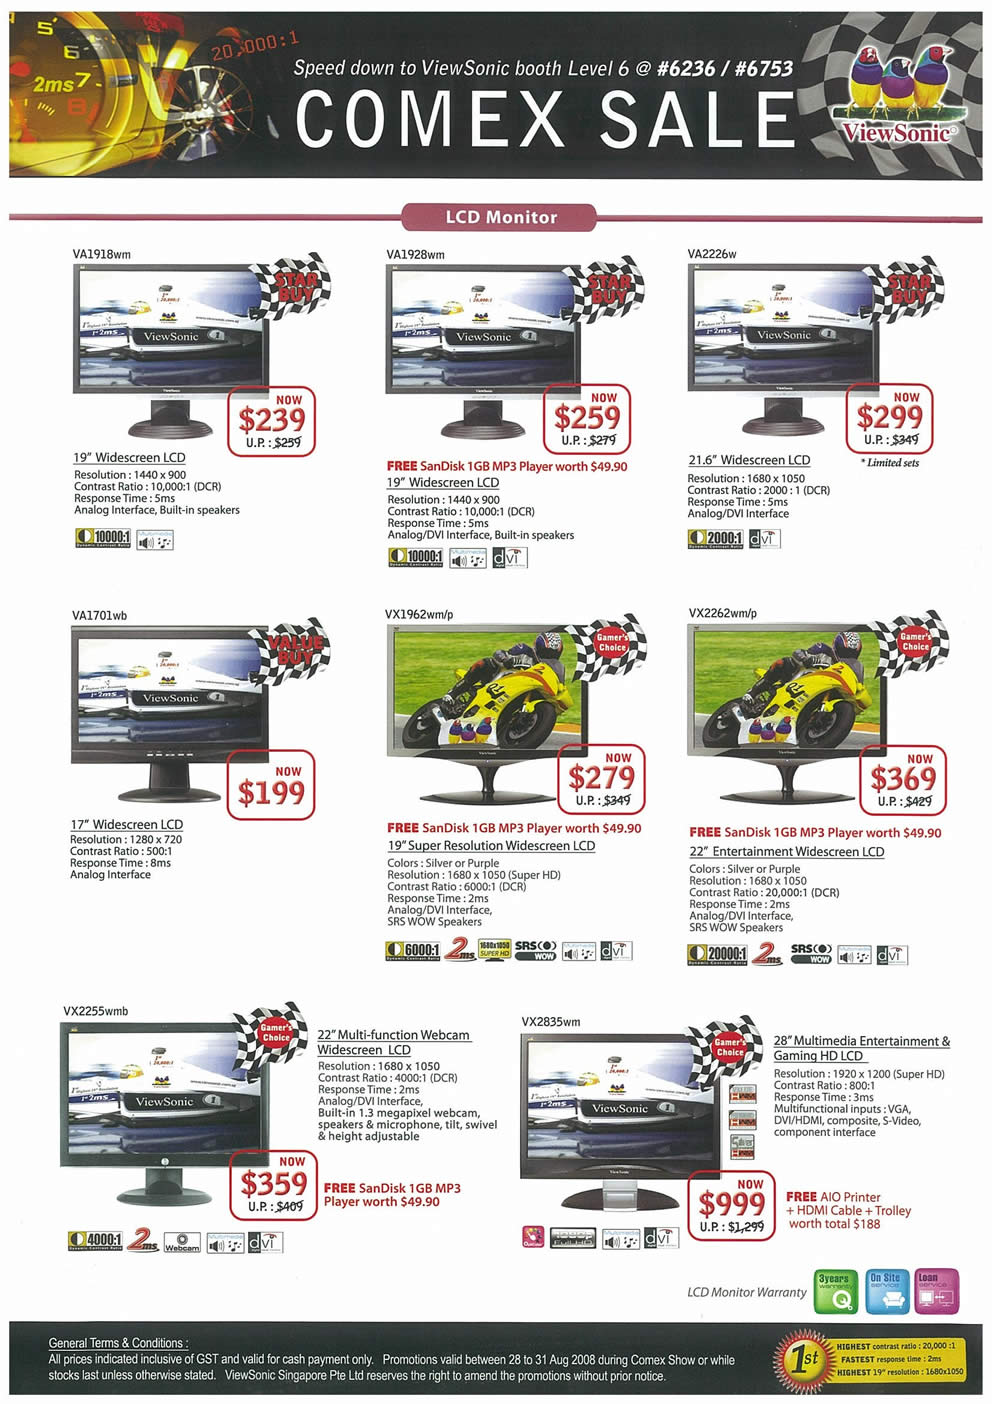 Comex 2008 price list image brochure of Viewsonic LCD Monitors Page 1